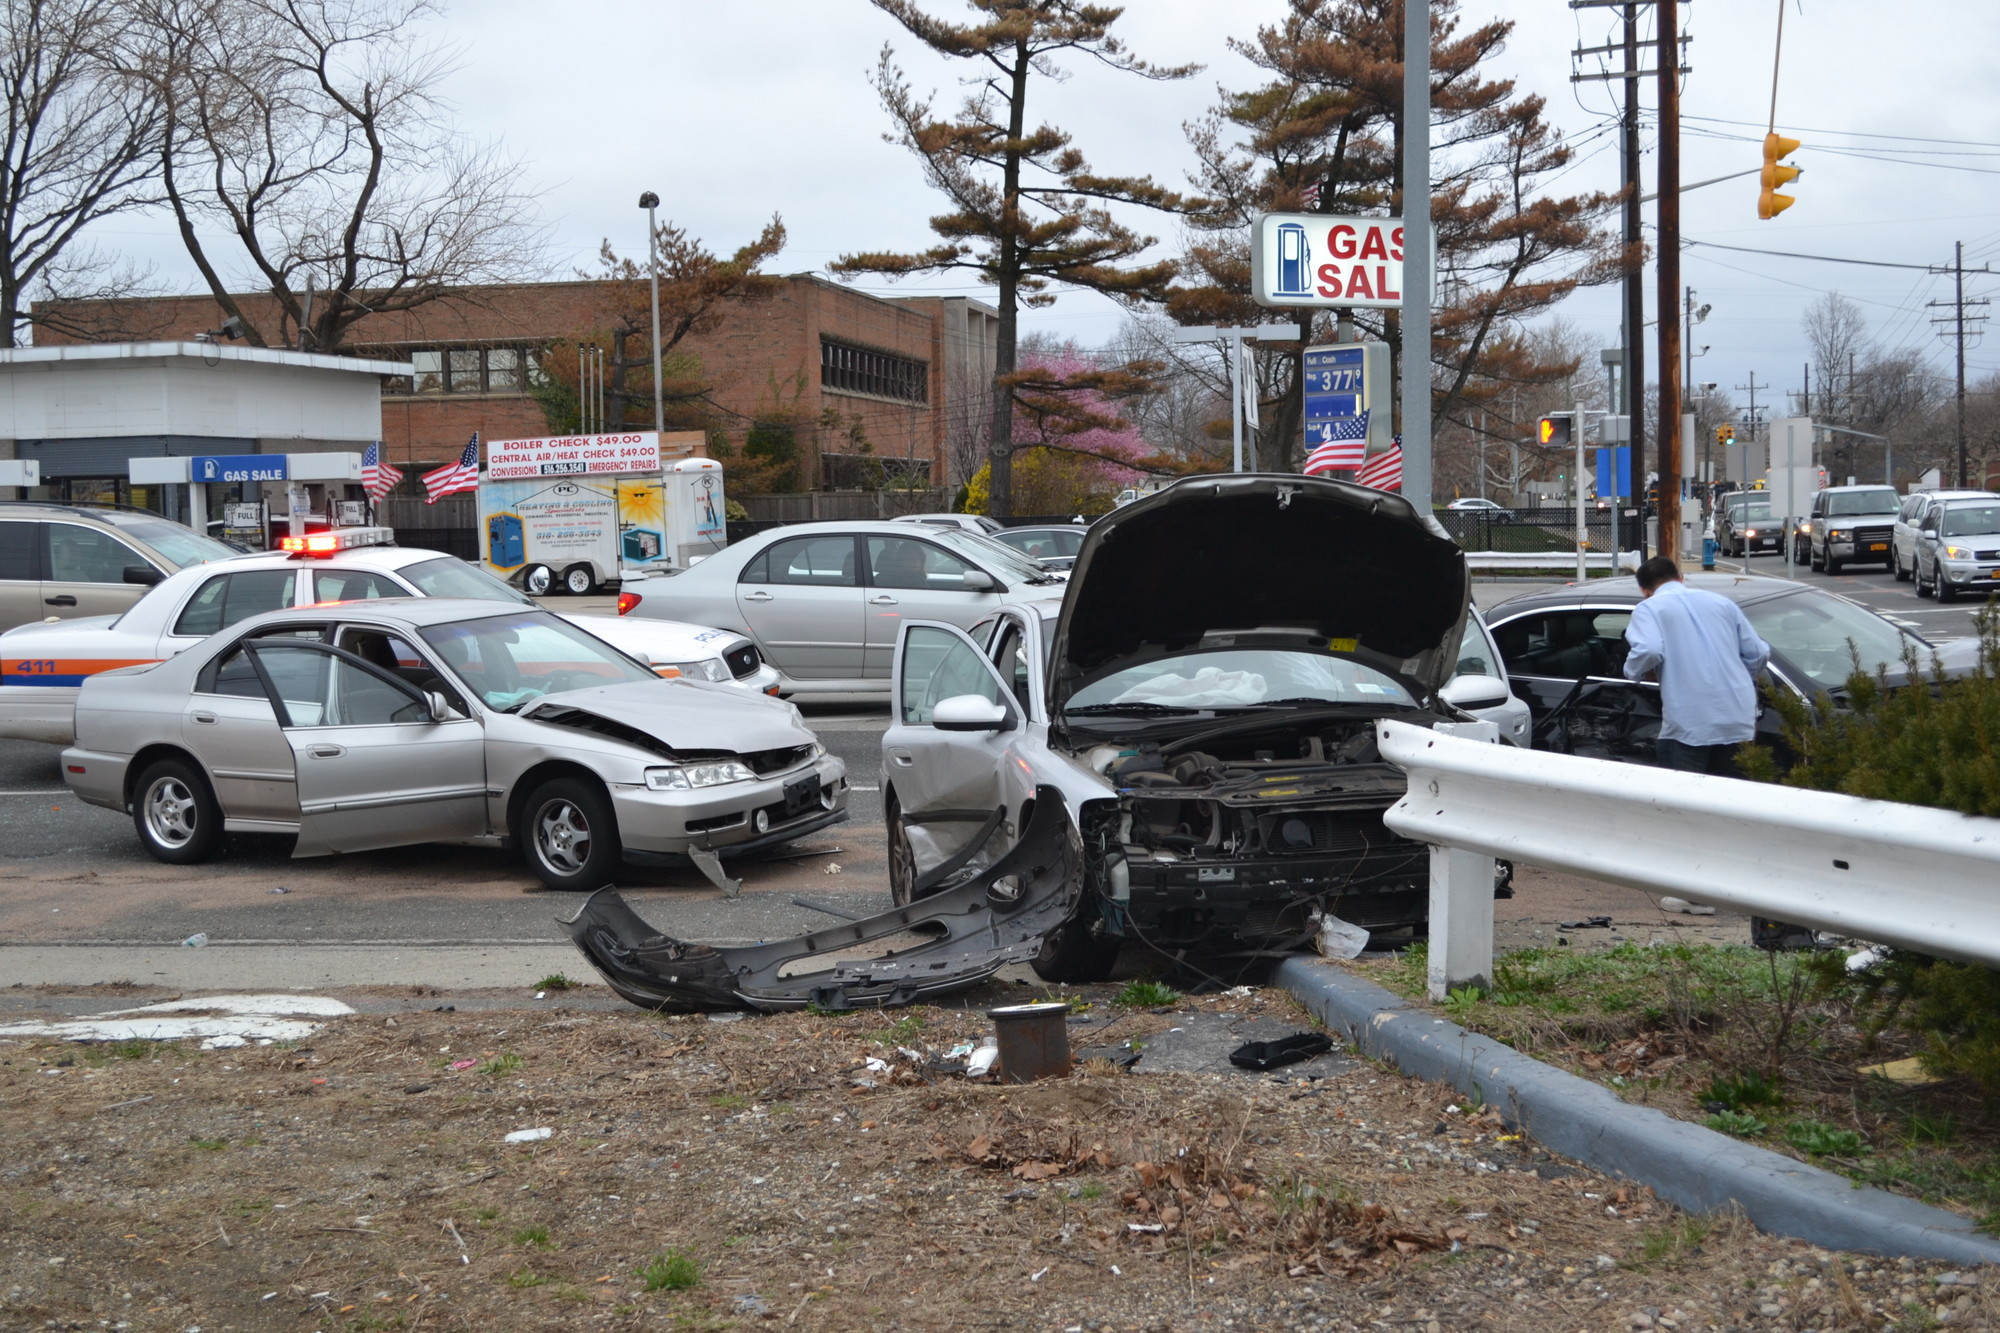 Three people were injured in a three-car accident at the intersection of Peninsula Boulevard and Mill Road in Hewlett.